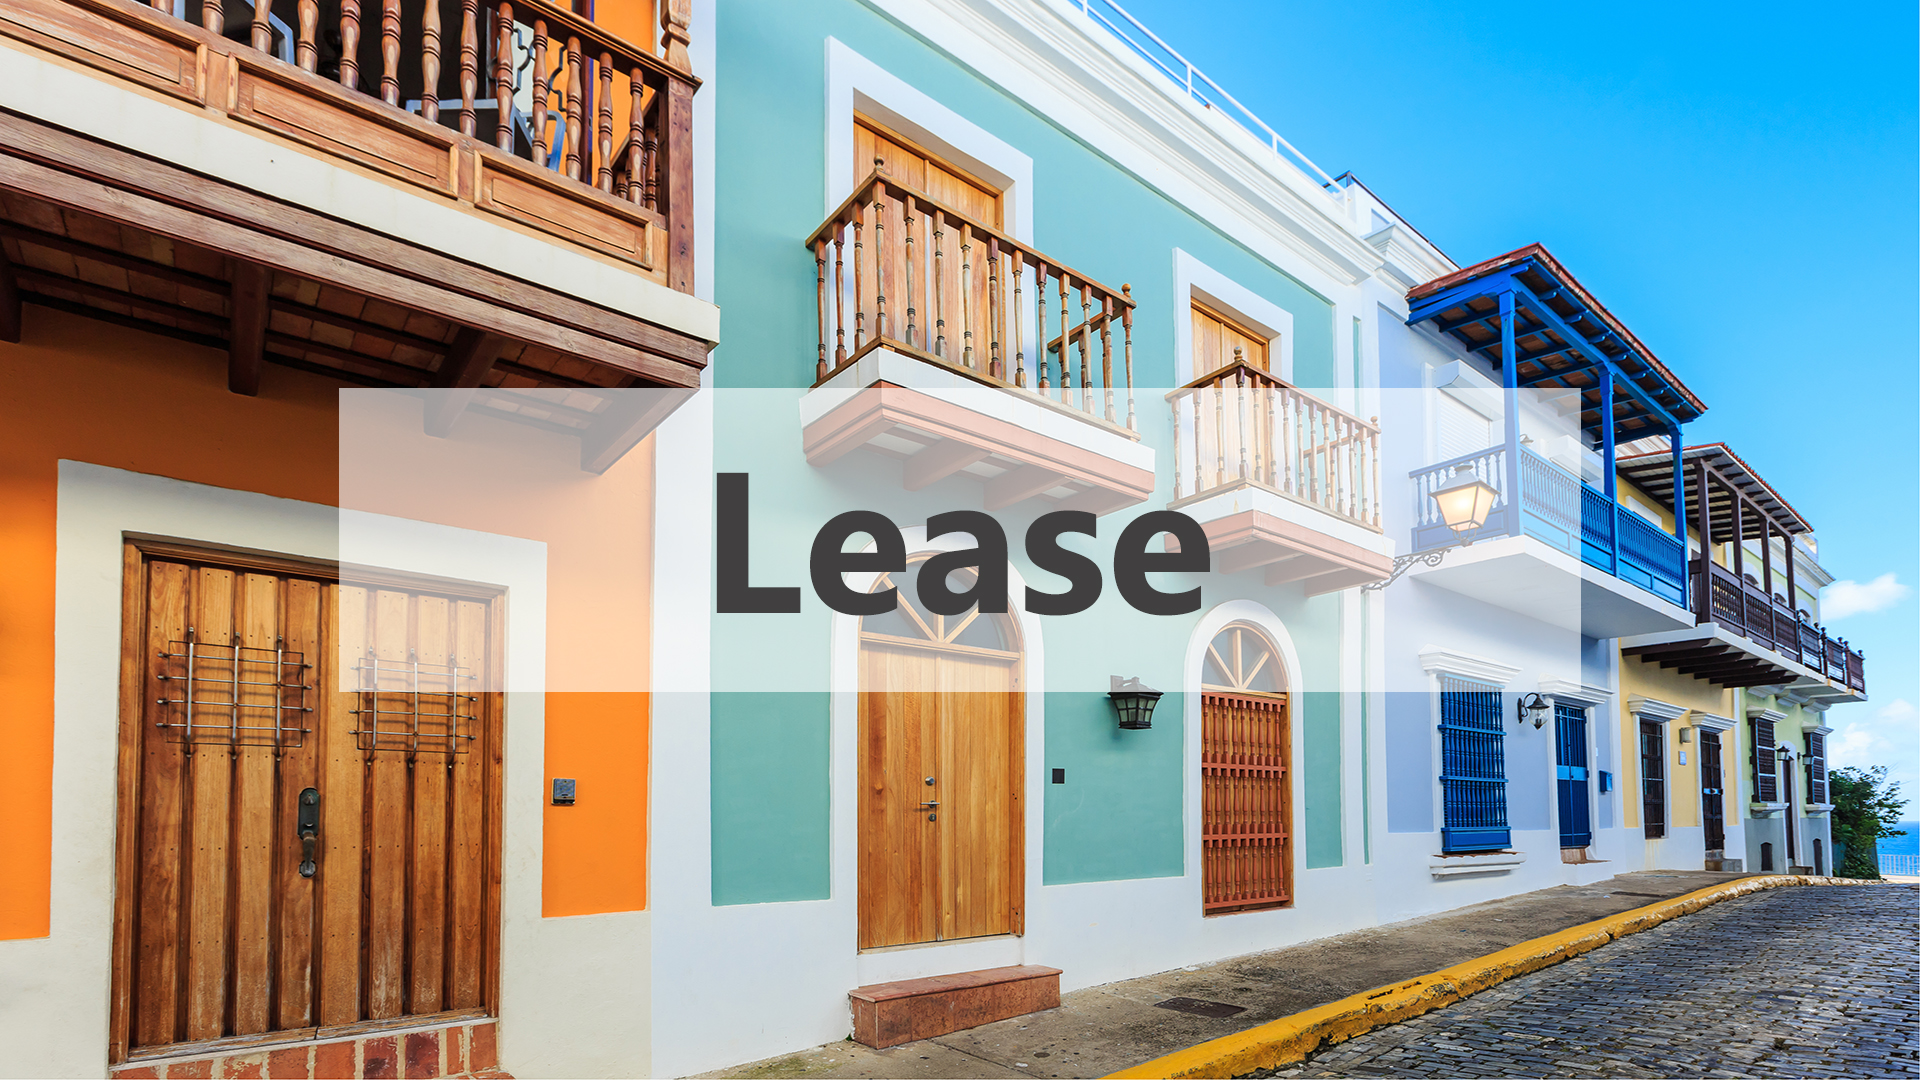 Real Estate for Lease in Puerto Rico